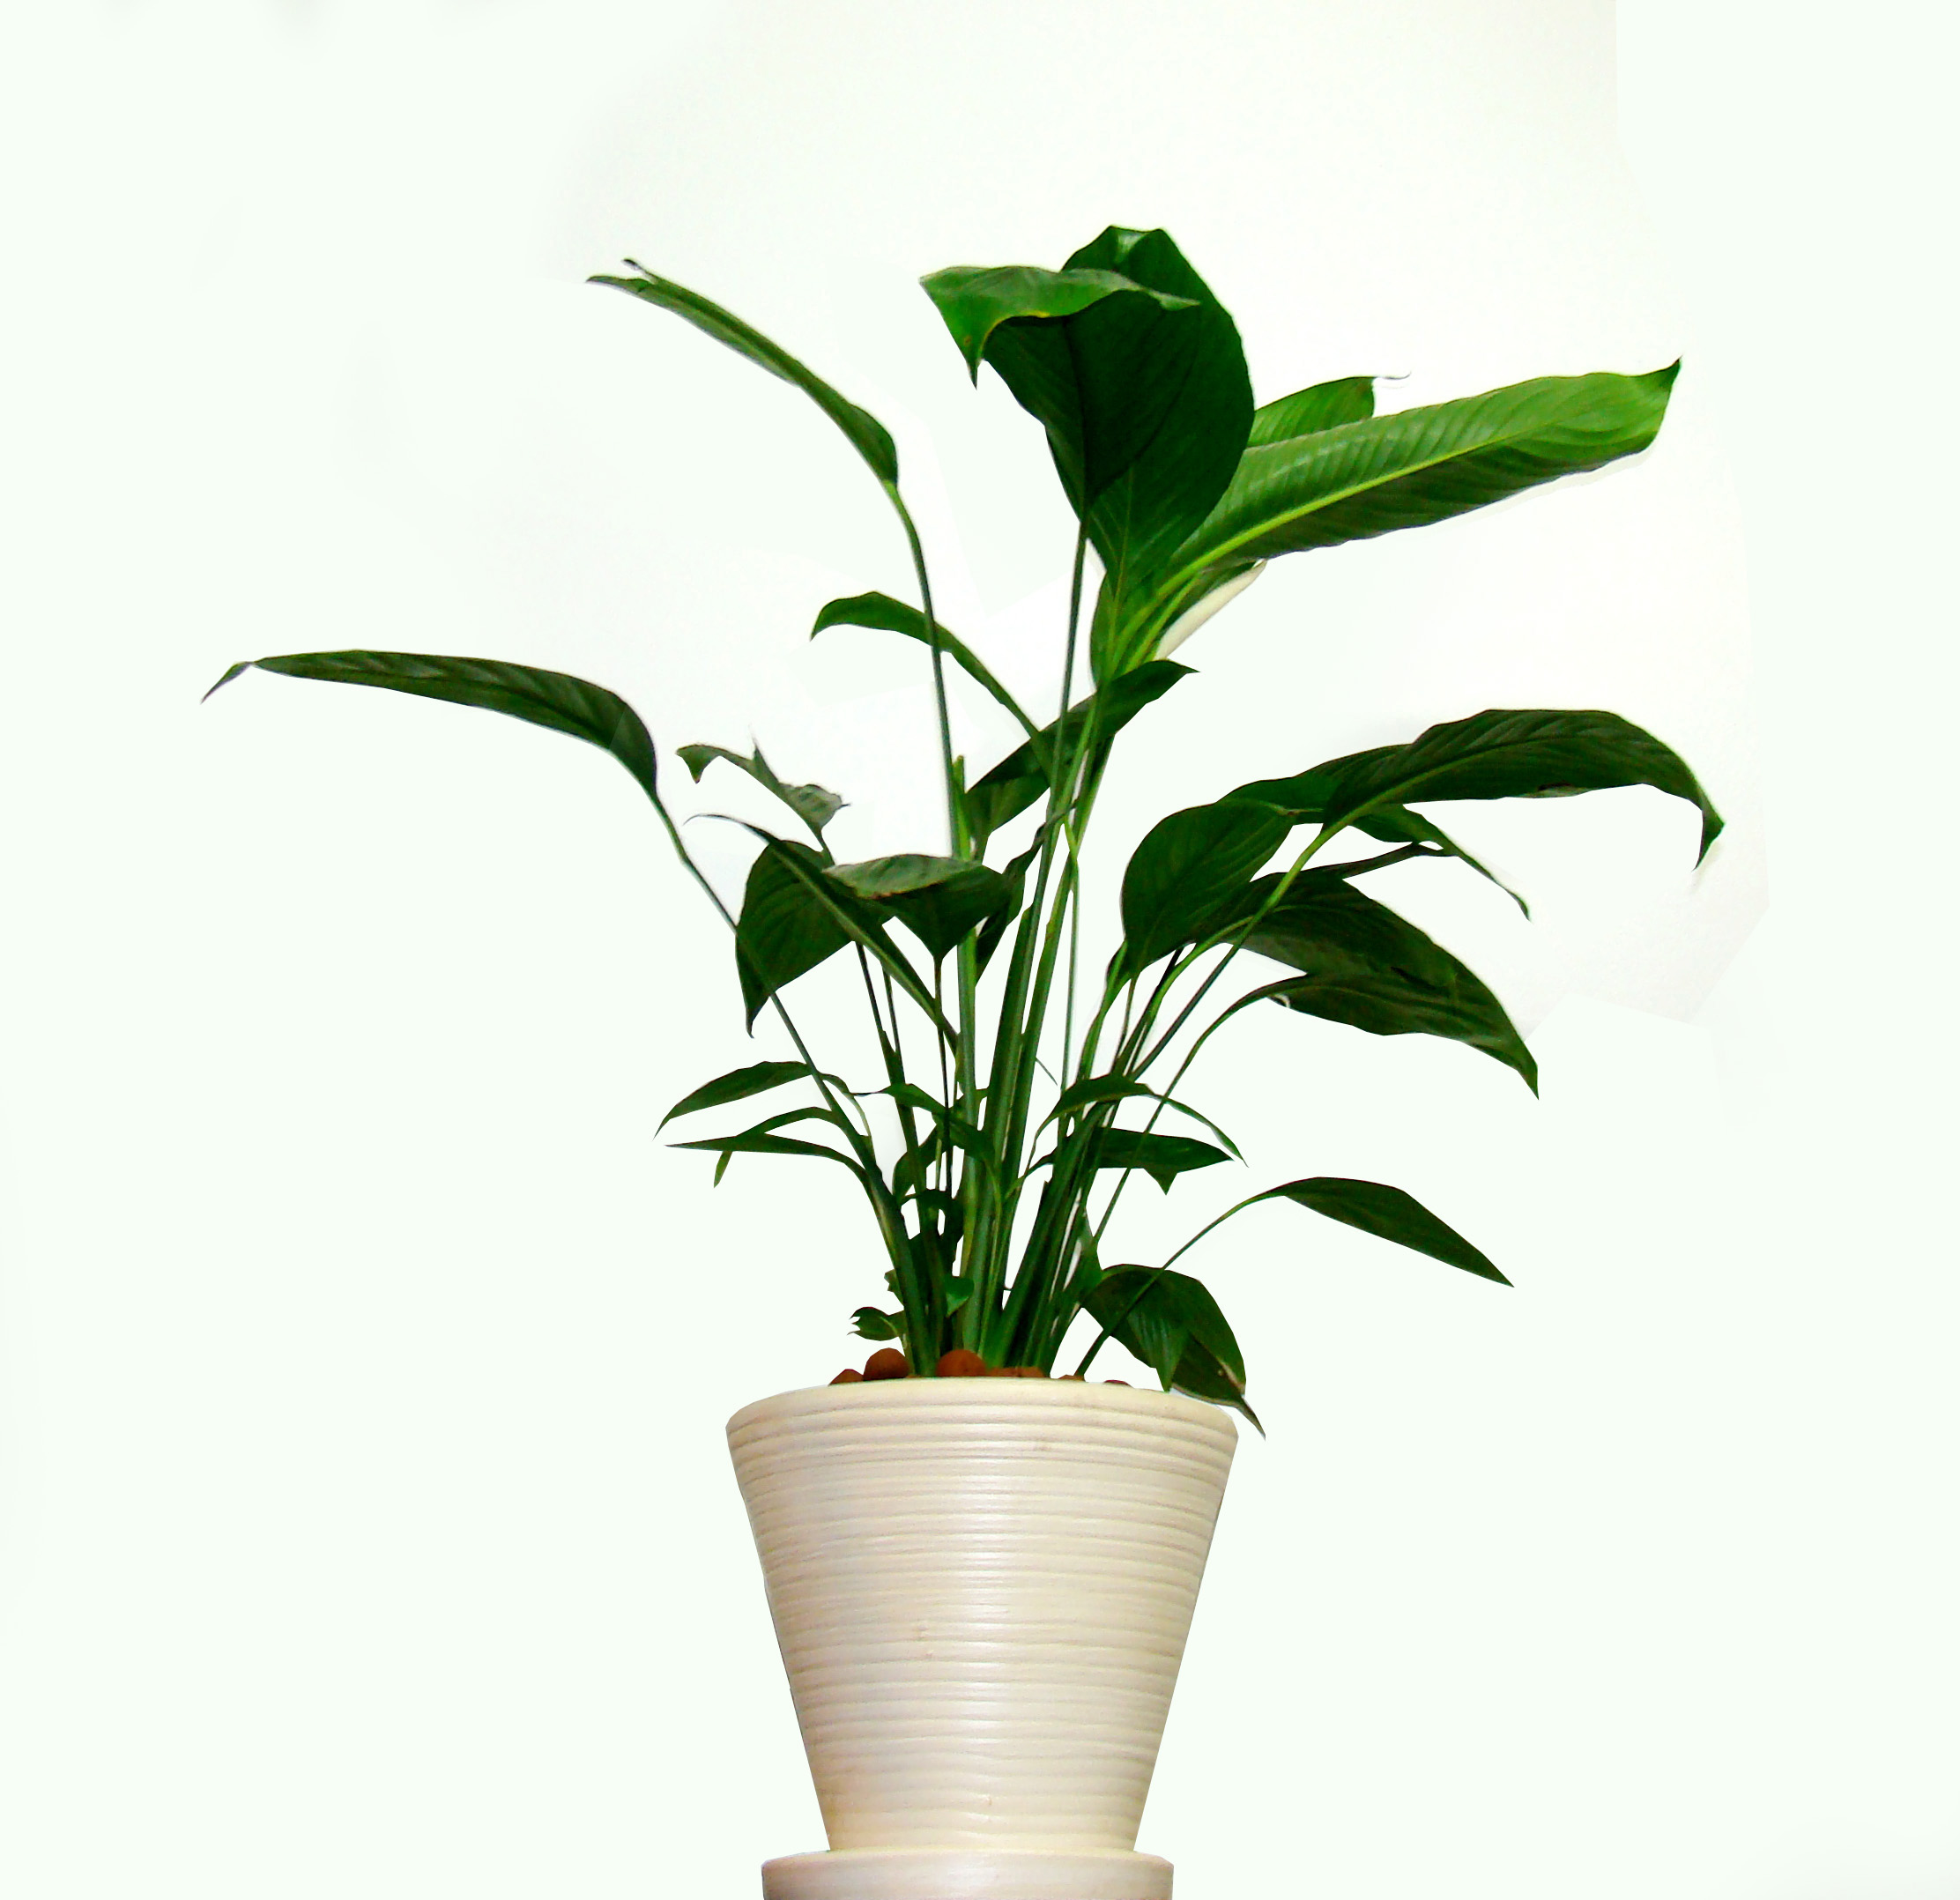 Peace lily plant care best method for beautiful foliage and the peace lily is one the most popular office and houseplants youll come across maybe its because it has beautiful dark green glossy foliage and oval izmirmasajfo